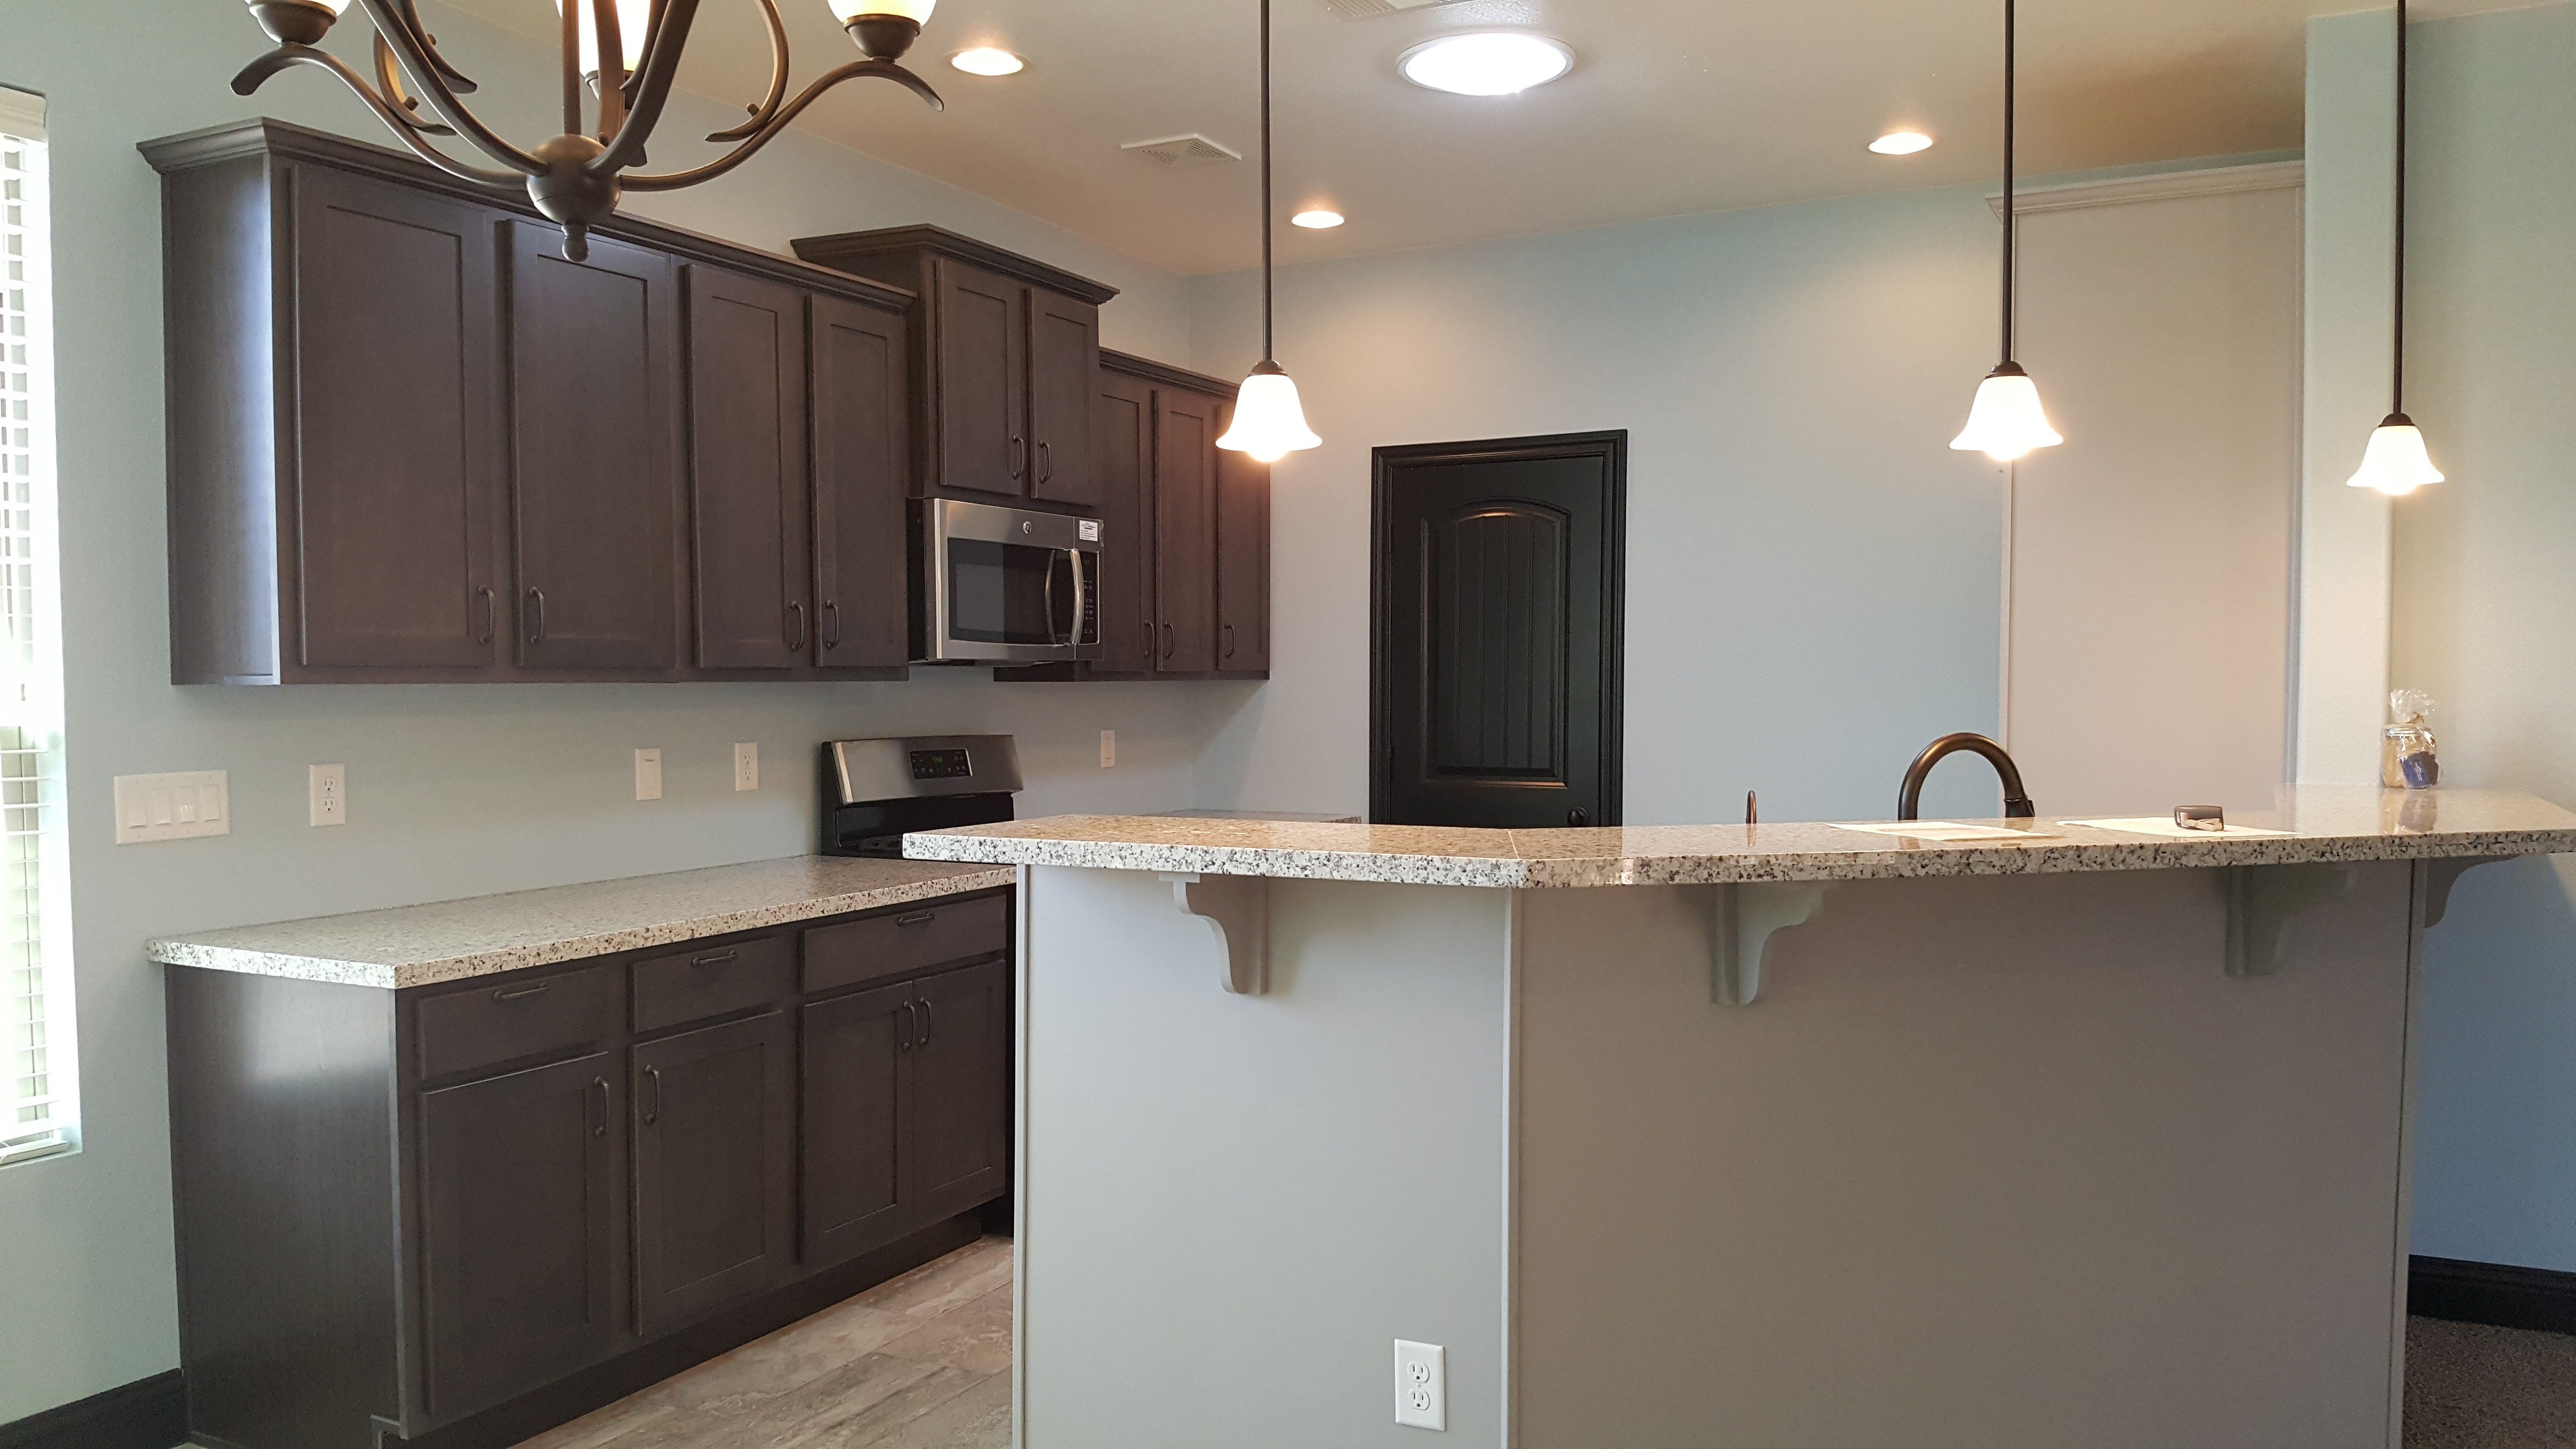 Contrasting Cabinets And A Bright Paint Color Make This Mirella Kitchen Pop Home Bright Paint Colors New Homes